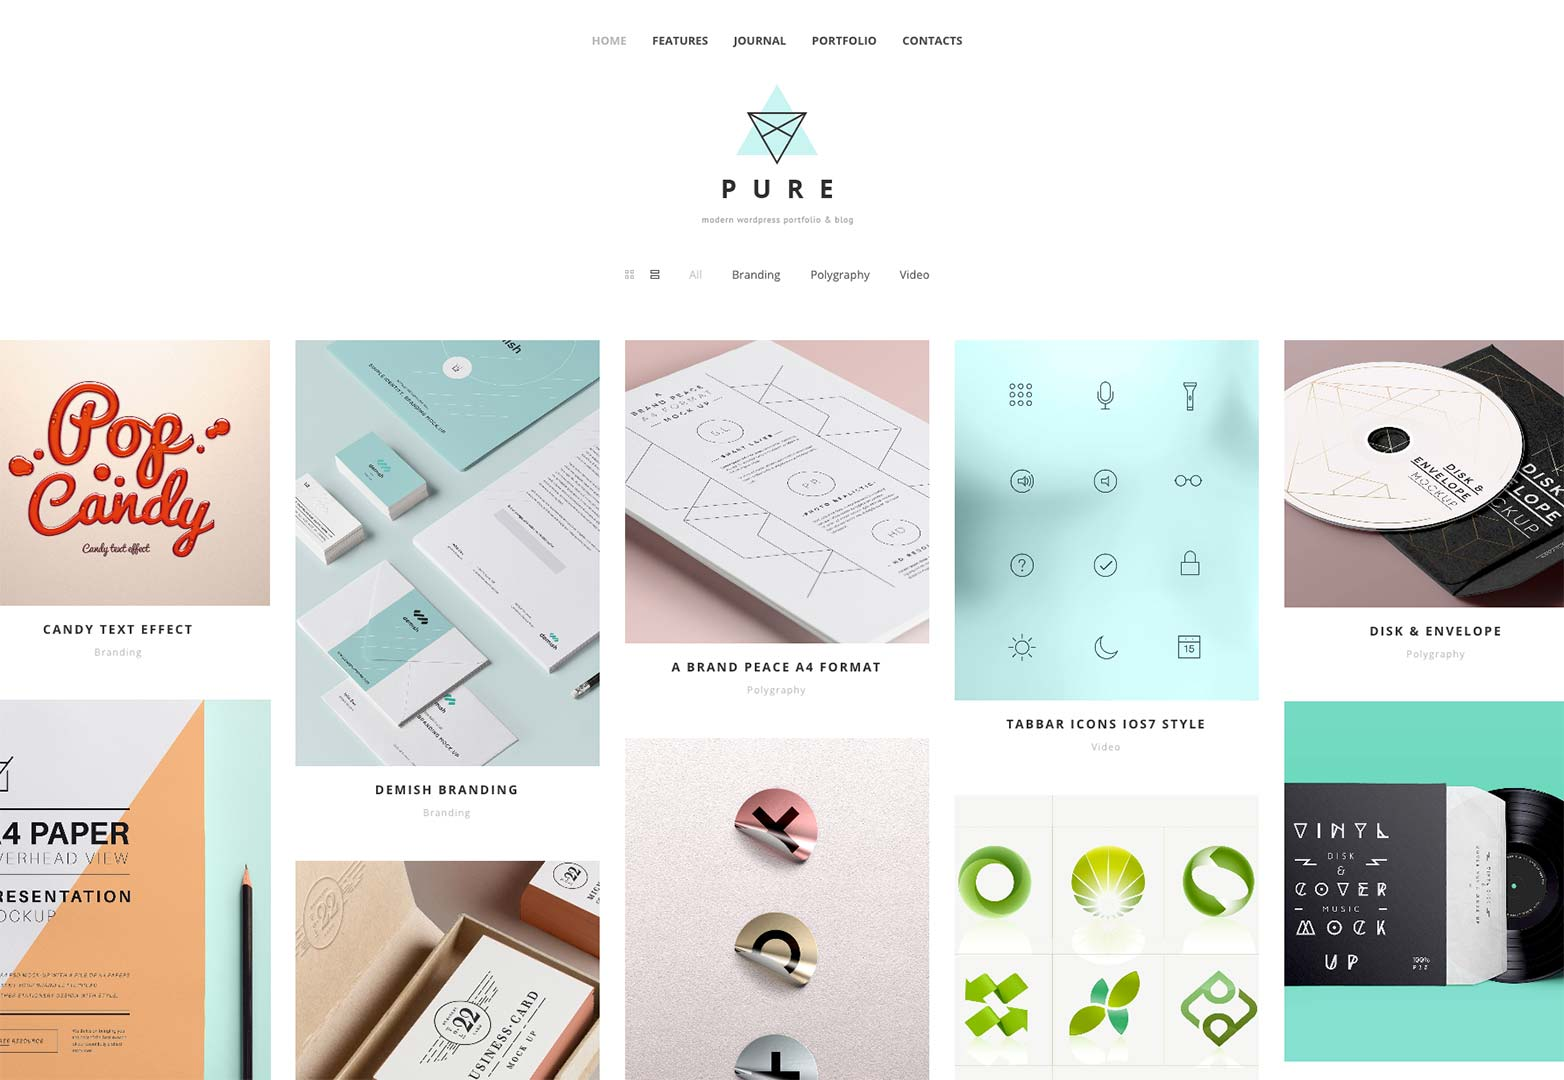 Free download pure wordpress theme webdesigner depot as well as the dedicated portfolio option theres also the journal with substantial space given over to images maxwellsz